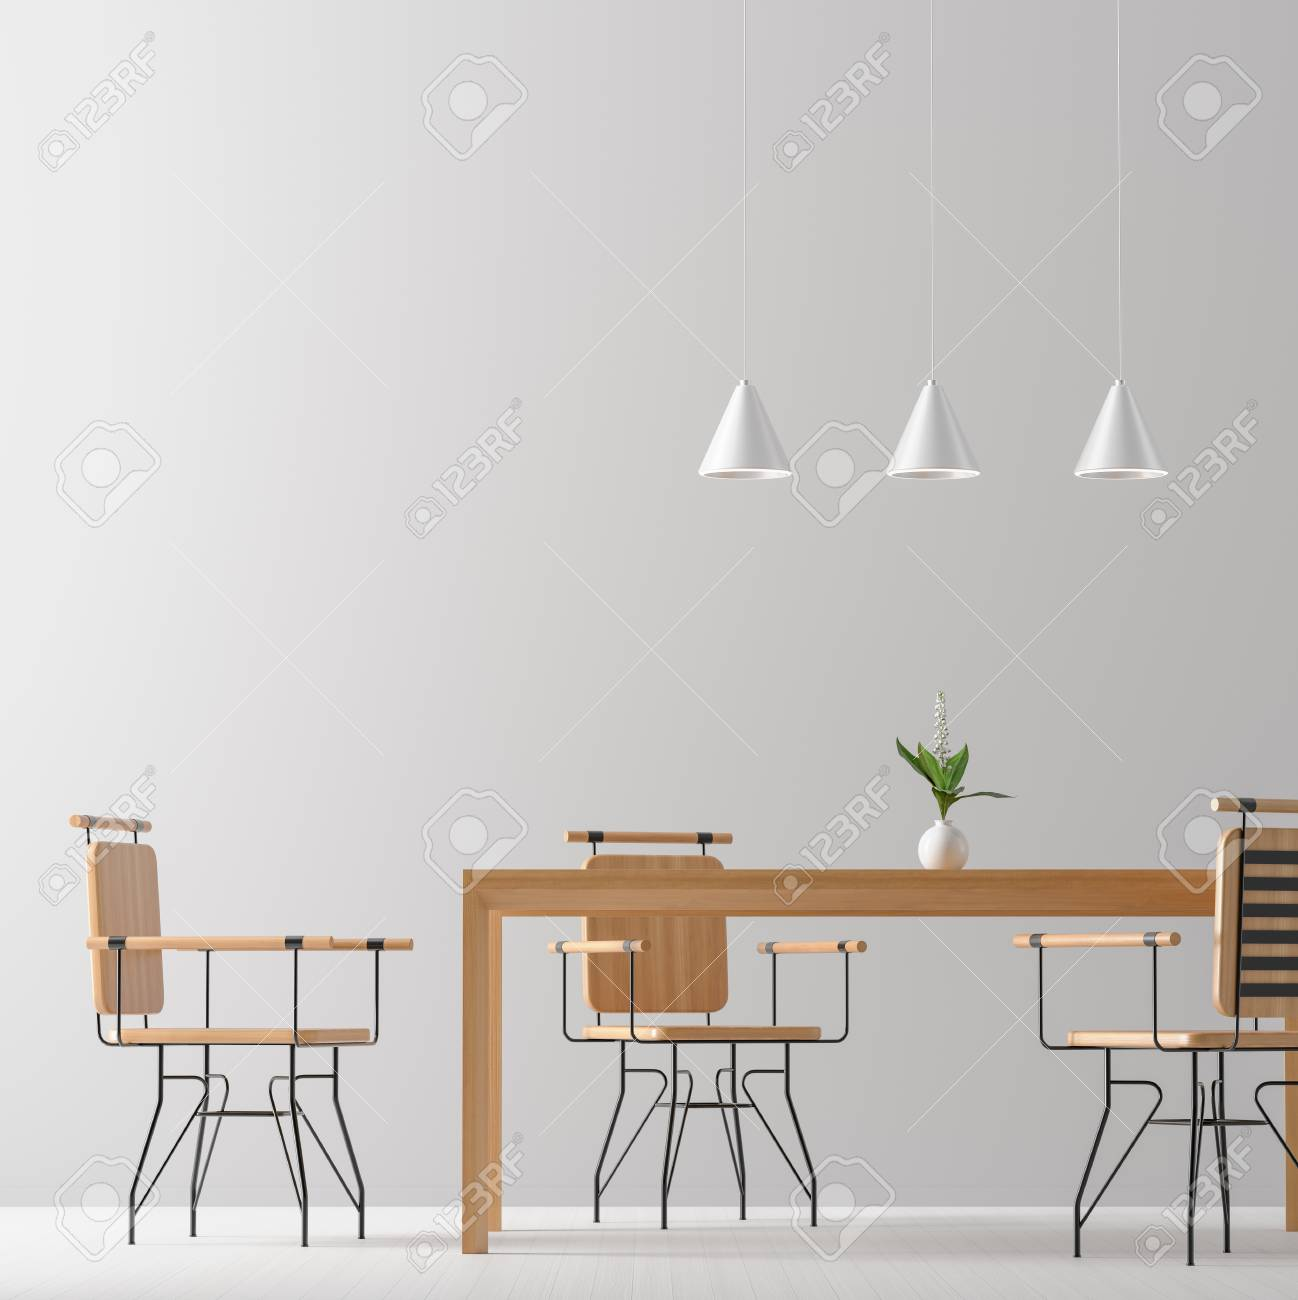 Picture of: Spacious Modern Dining Room With Wooden Chairs And Table Minimalist Stock Photo Picture And Royalty Free Image Image 124623975